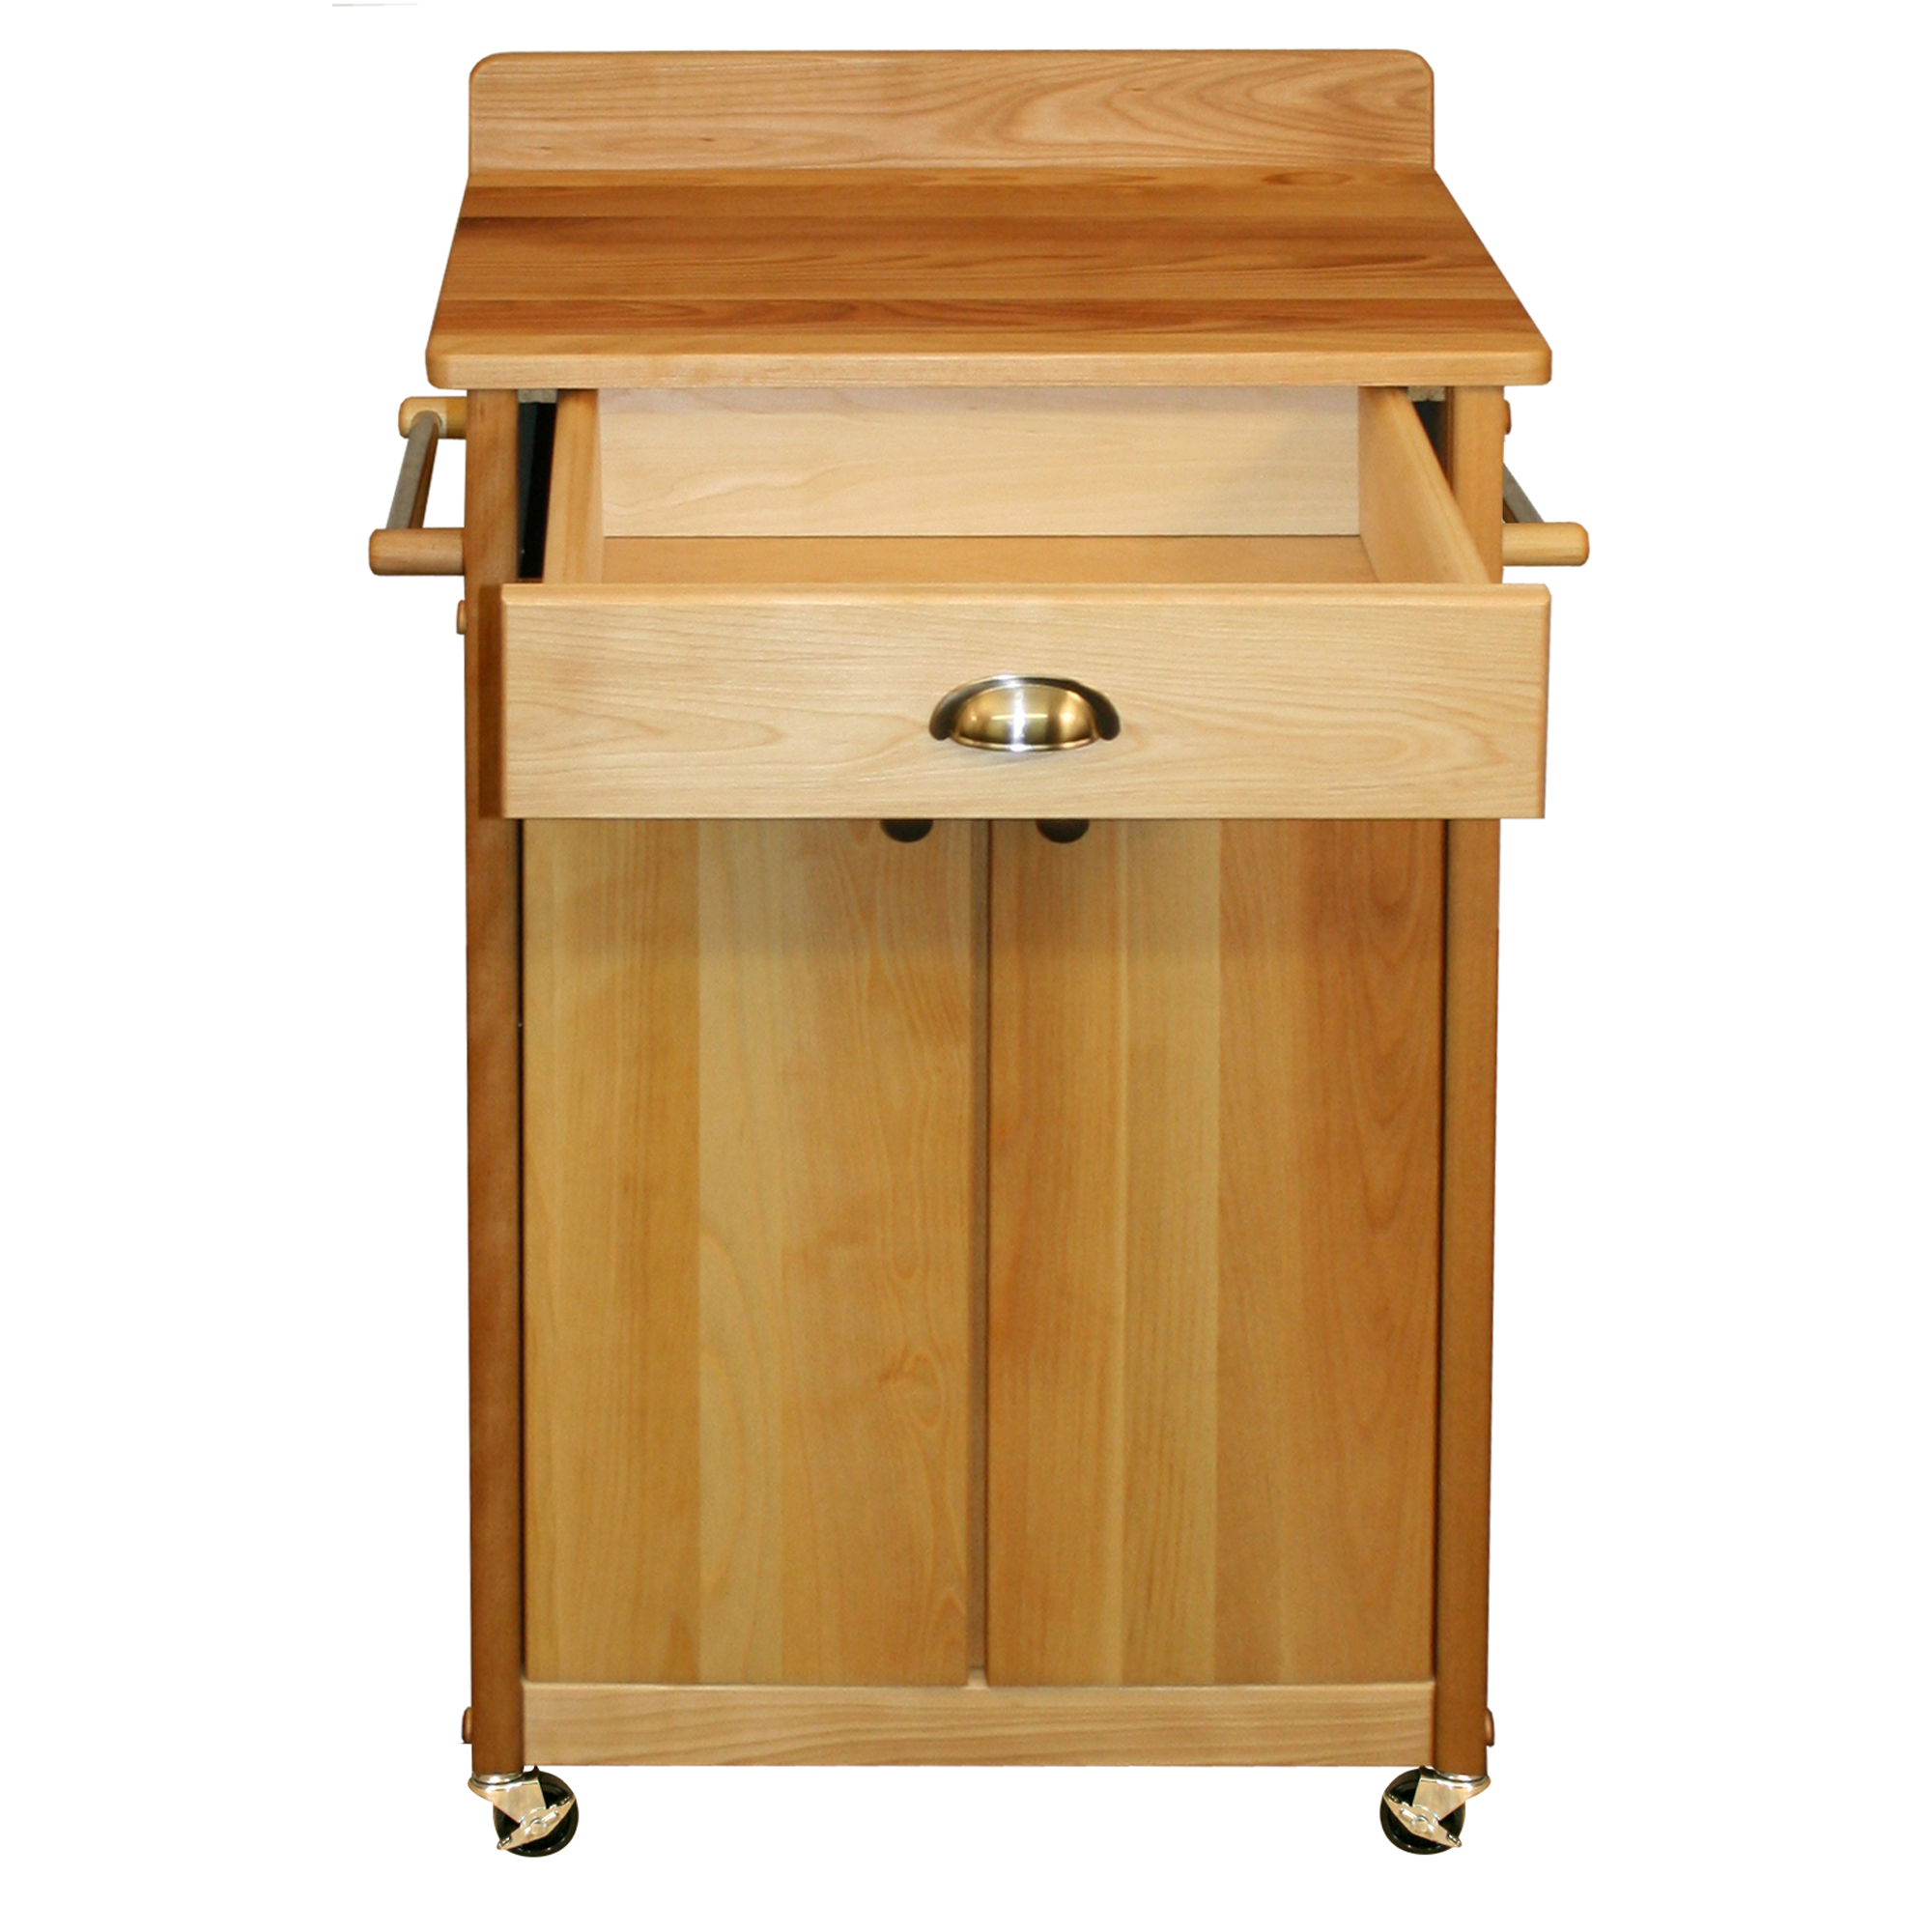 Catskill Economy Butcher Block w/ Backsplash Cart - 23